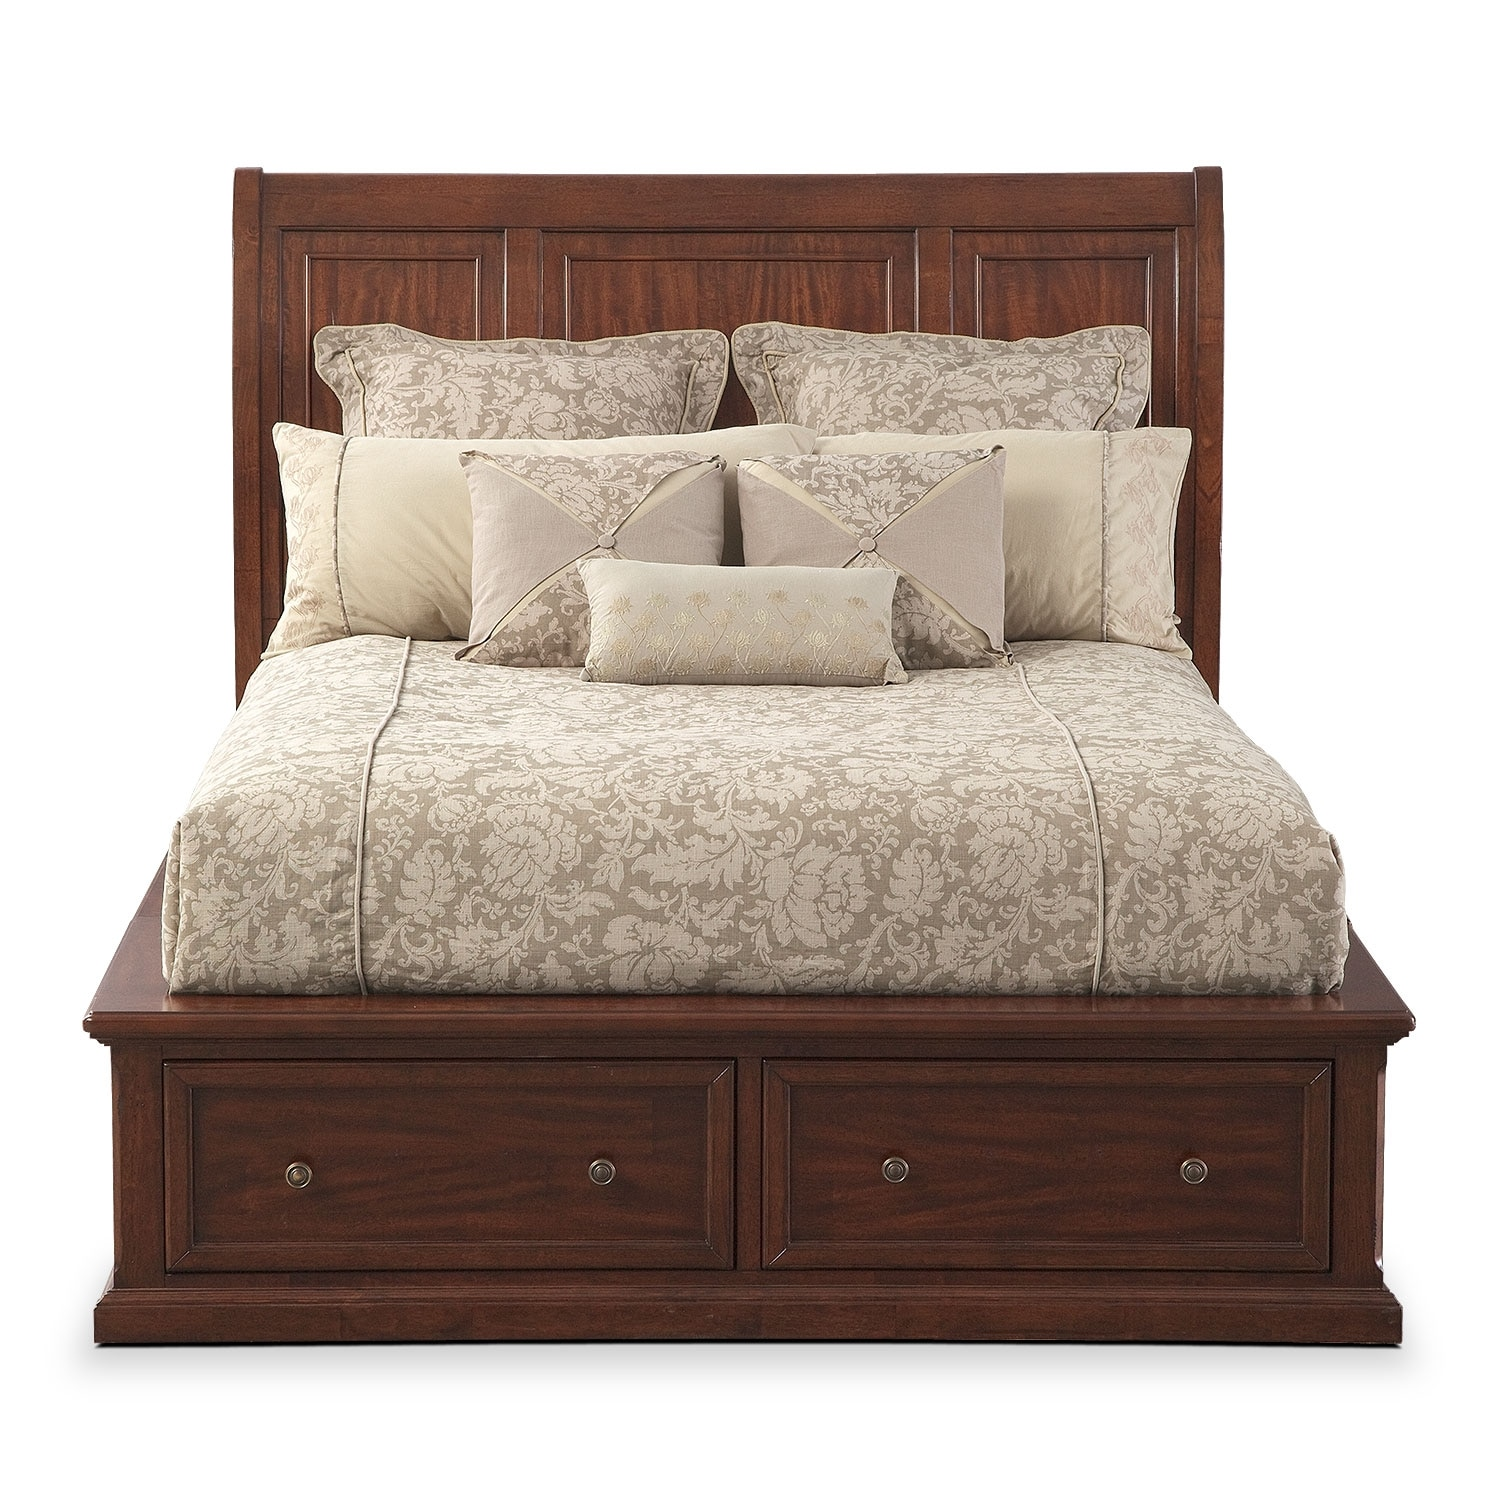 Hanover King Storage Bed Cherry American Signature